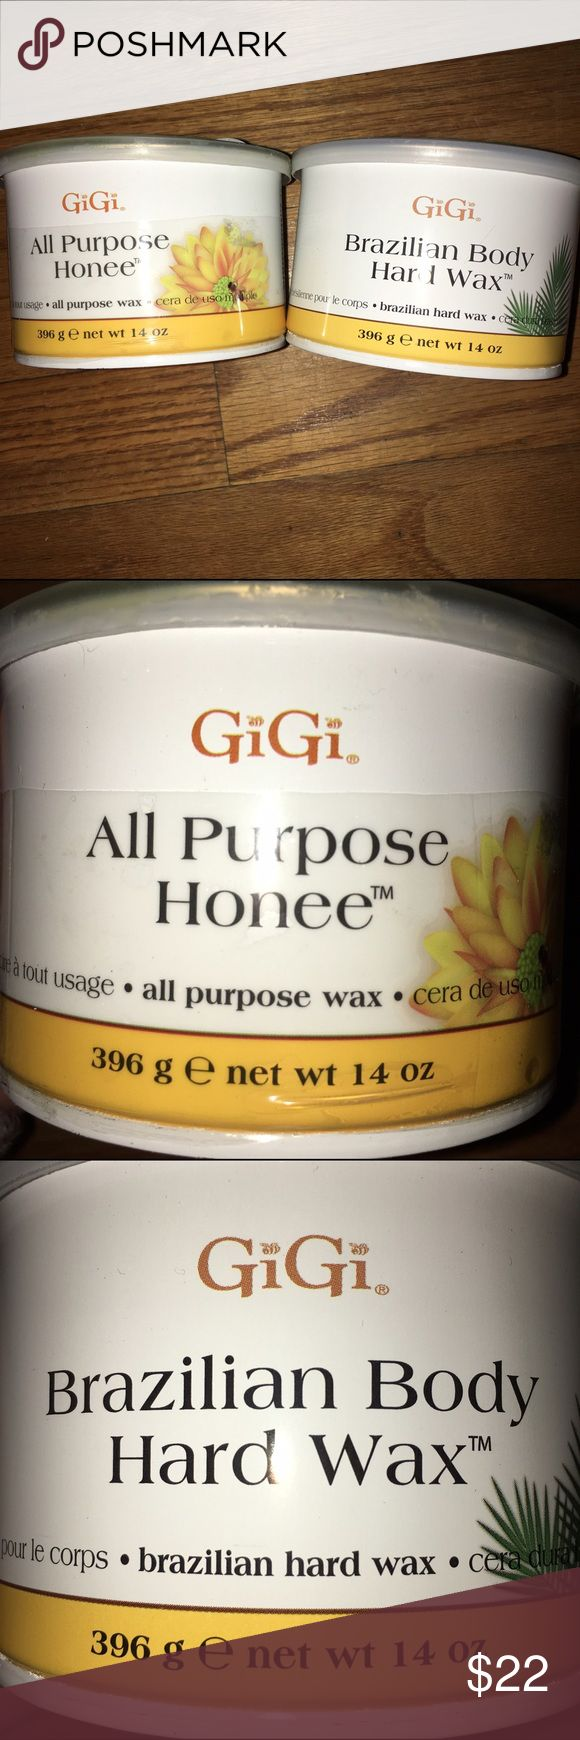 GiGi hot waxes All purpose honey- great for sensitive skin. & Brazilian Hard wax- amazing for thick stubborn hairs. Both have been open and used once or twice, but each are more than 90% full. Will include *free* spare applicators & wax strips. (See photo) GiGi Makeup